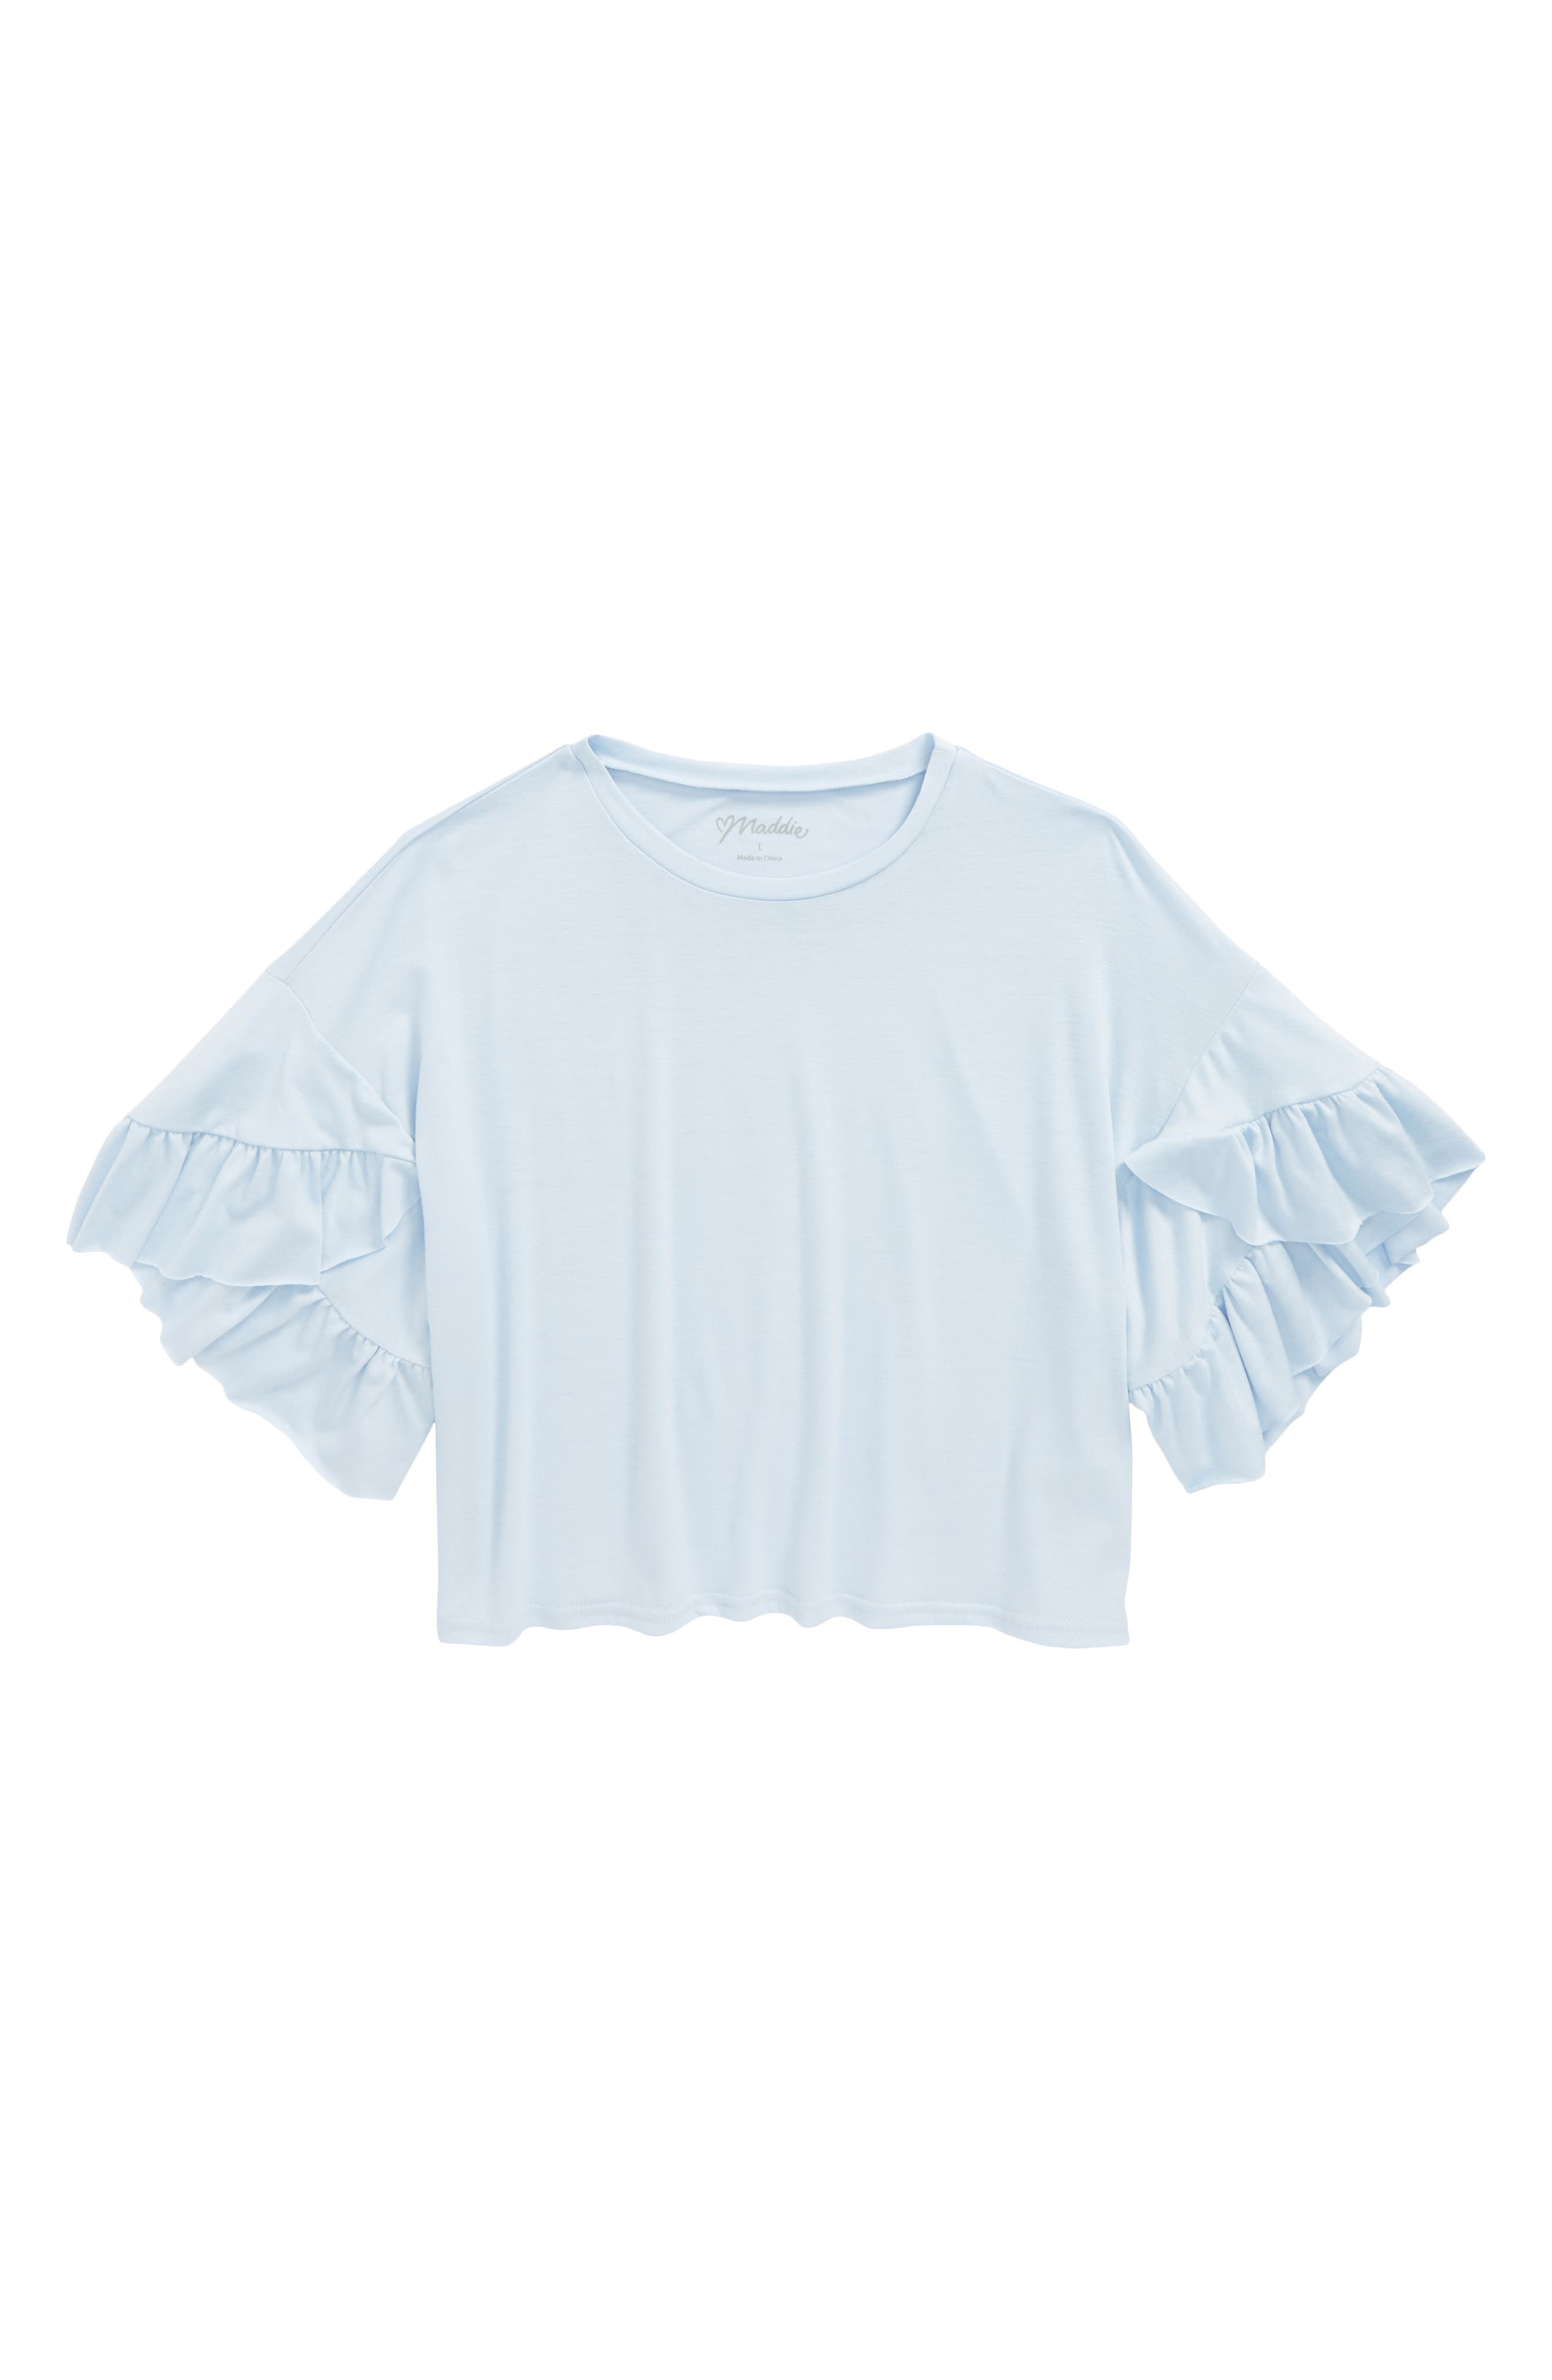 Ruffle Knit Top,                         Main,                         color, Blue